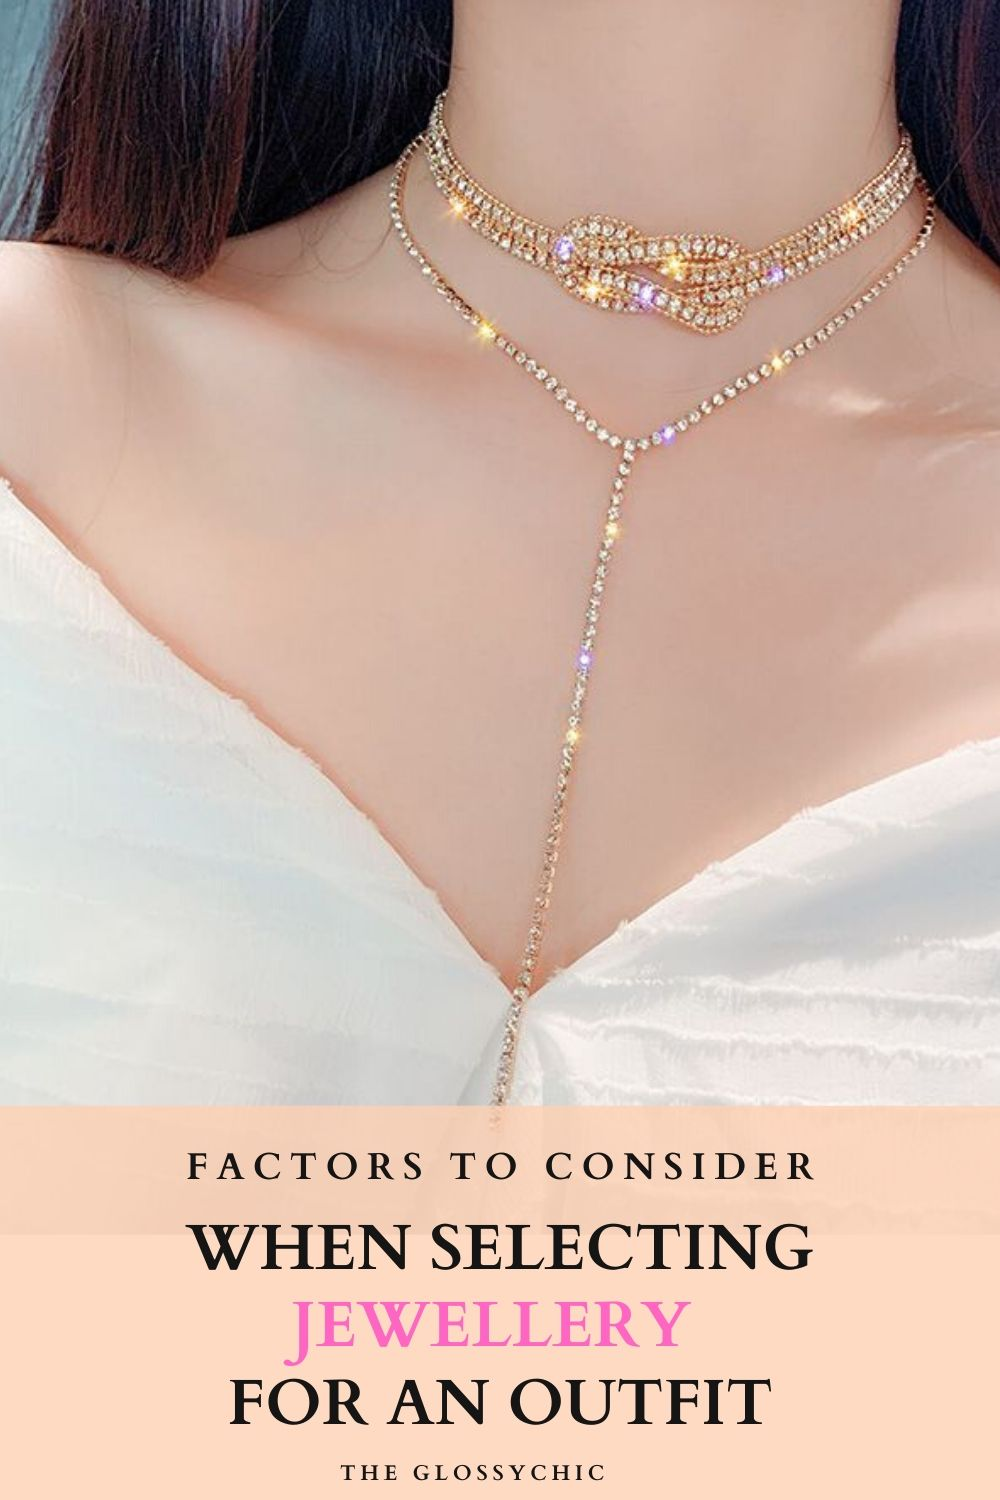 factors to consider when selecting jewellery for an outfit